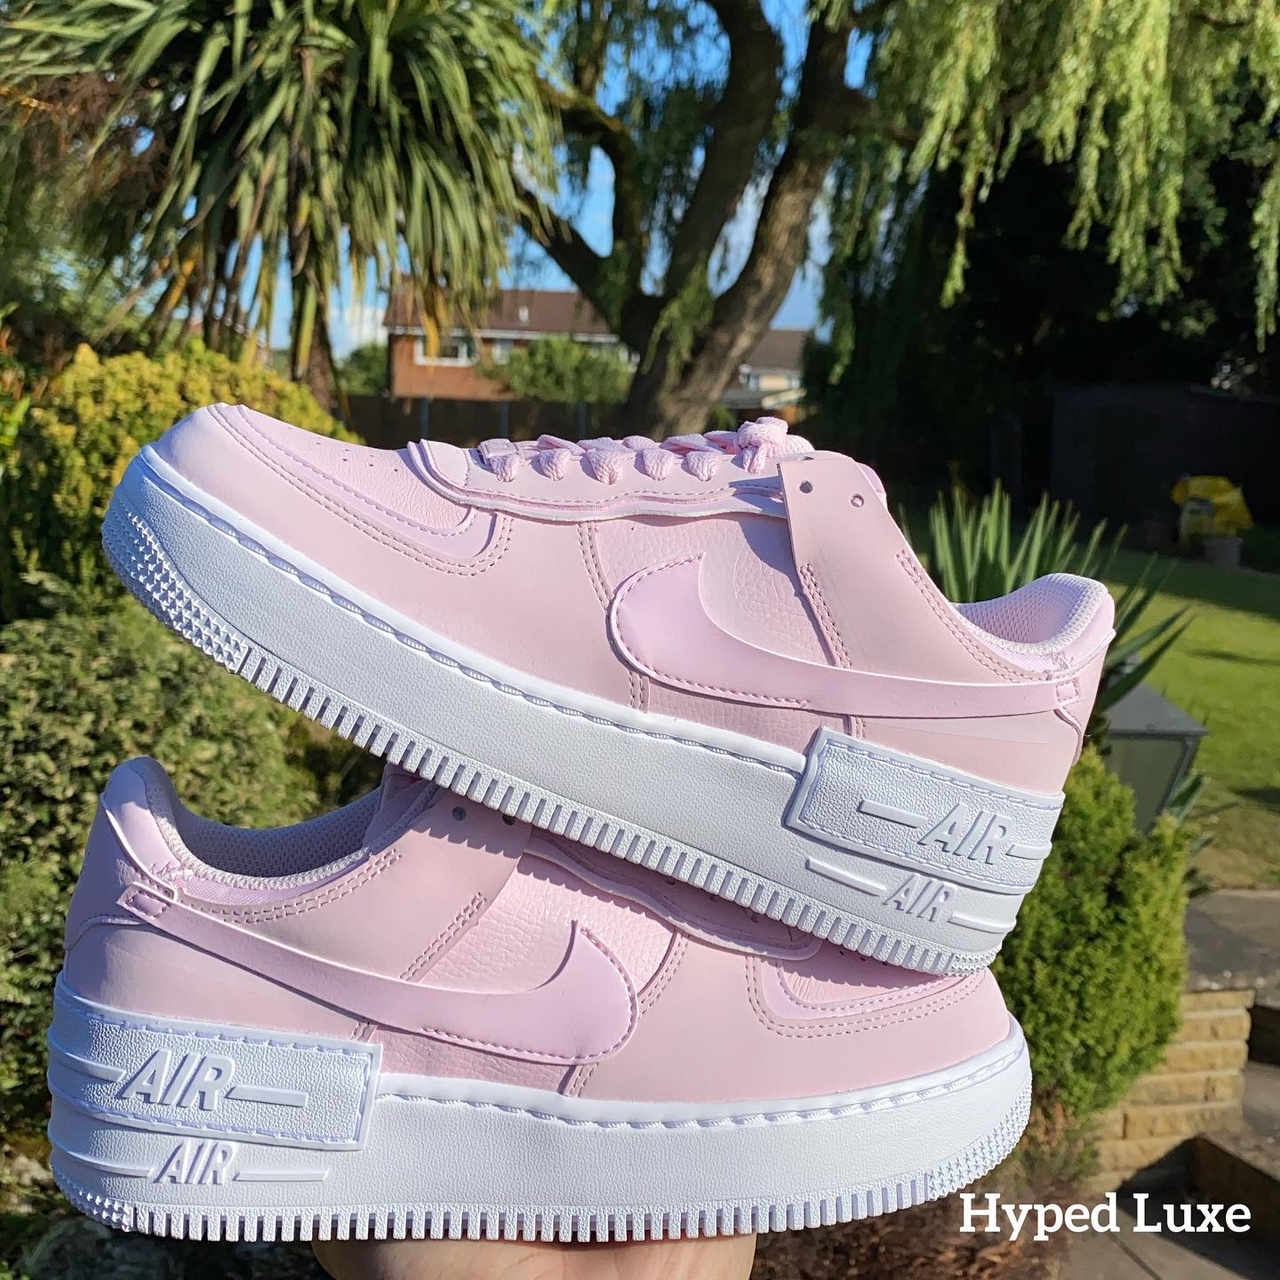 Nike Air Force 1 Shadow Pink Foam Uk5 5 5 Ignore Depop